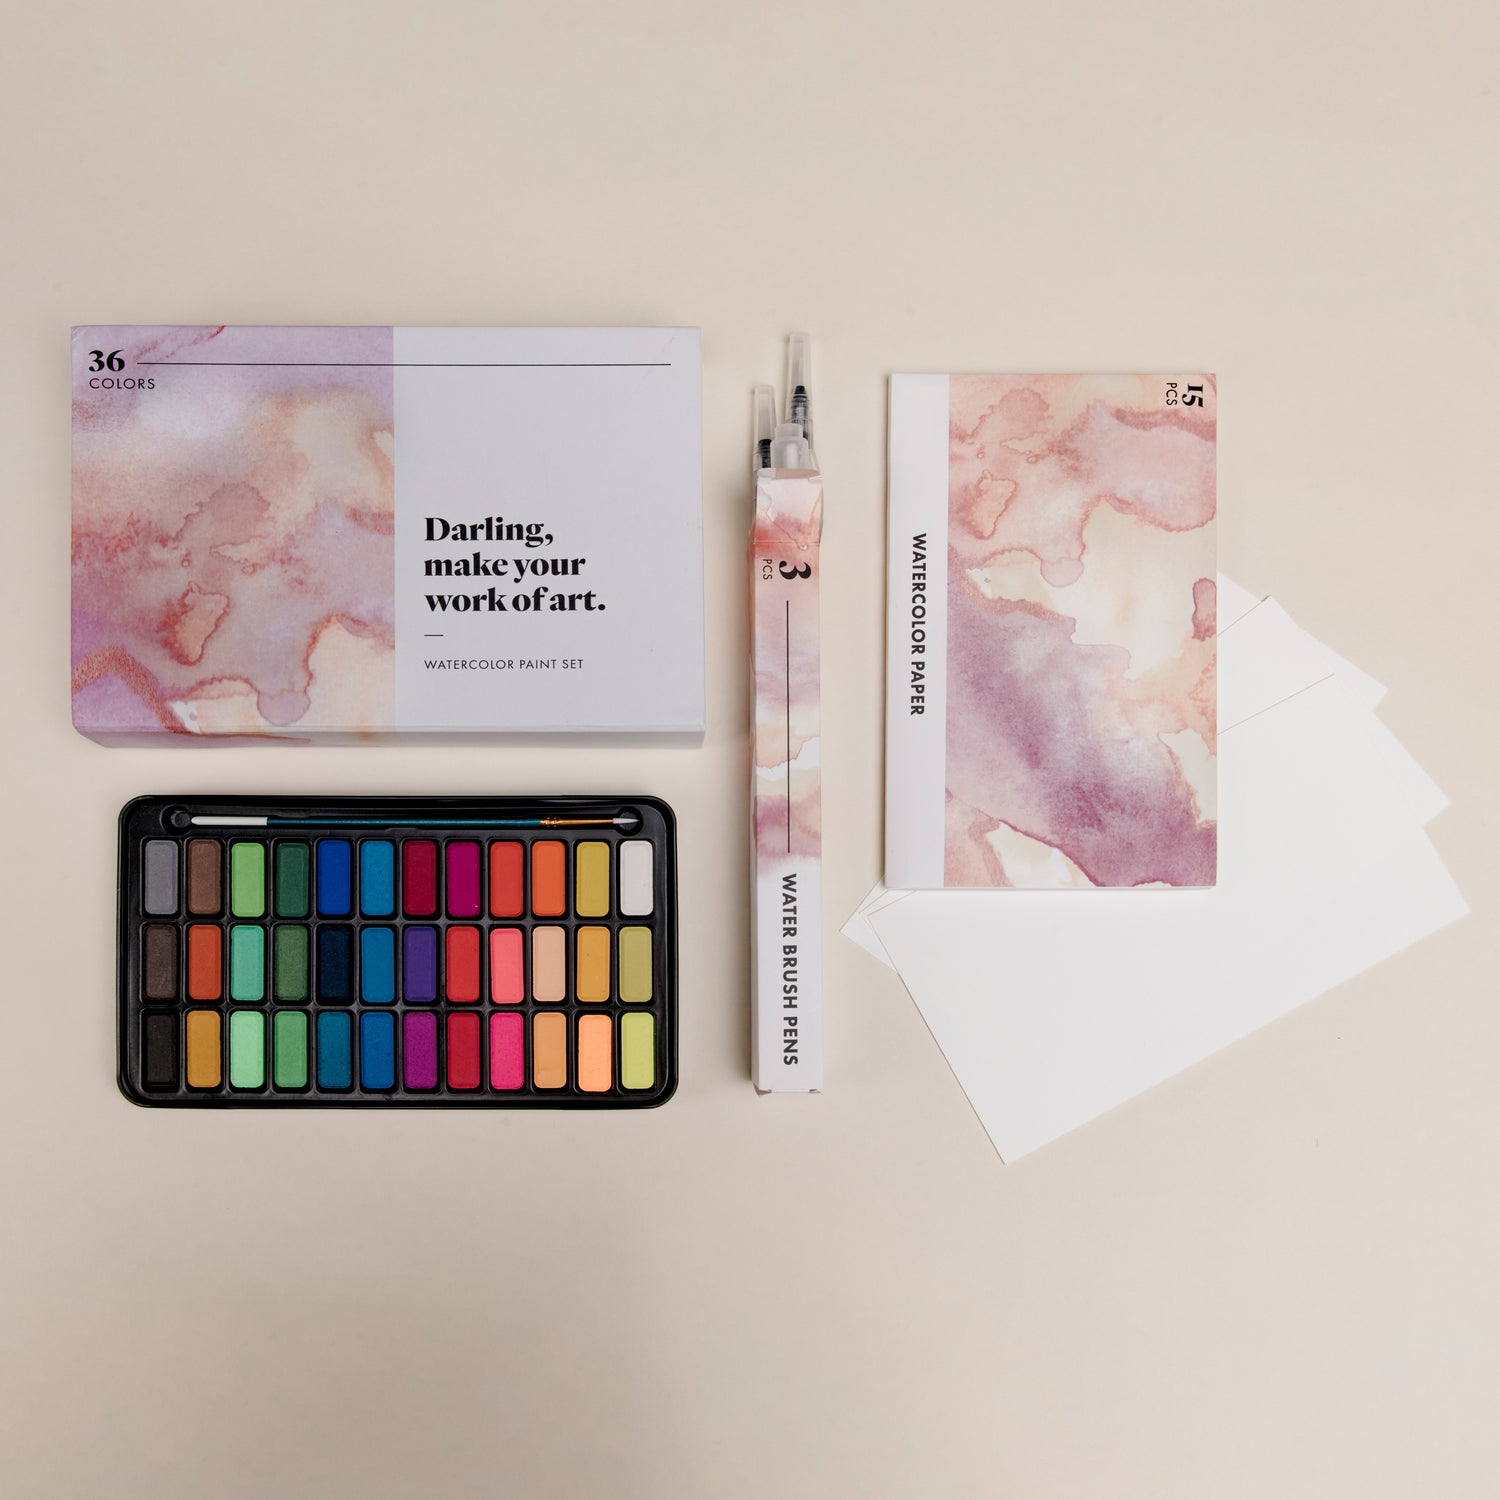 Darling Watercolor Paint Set